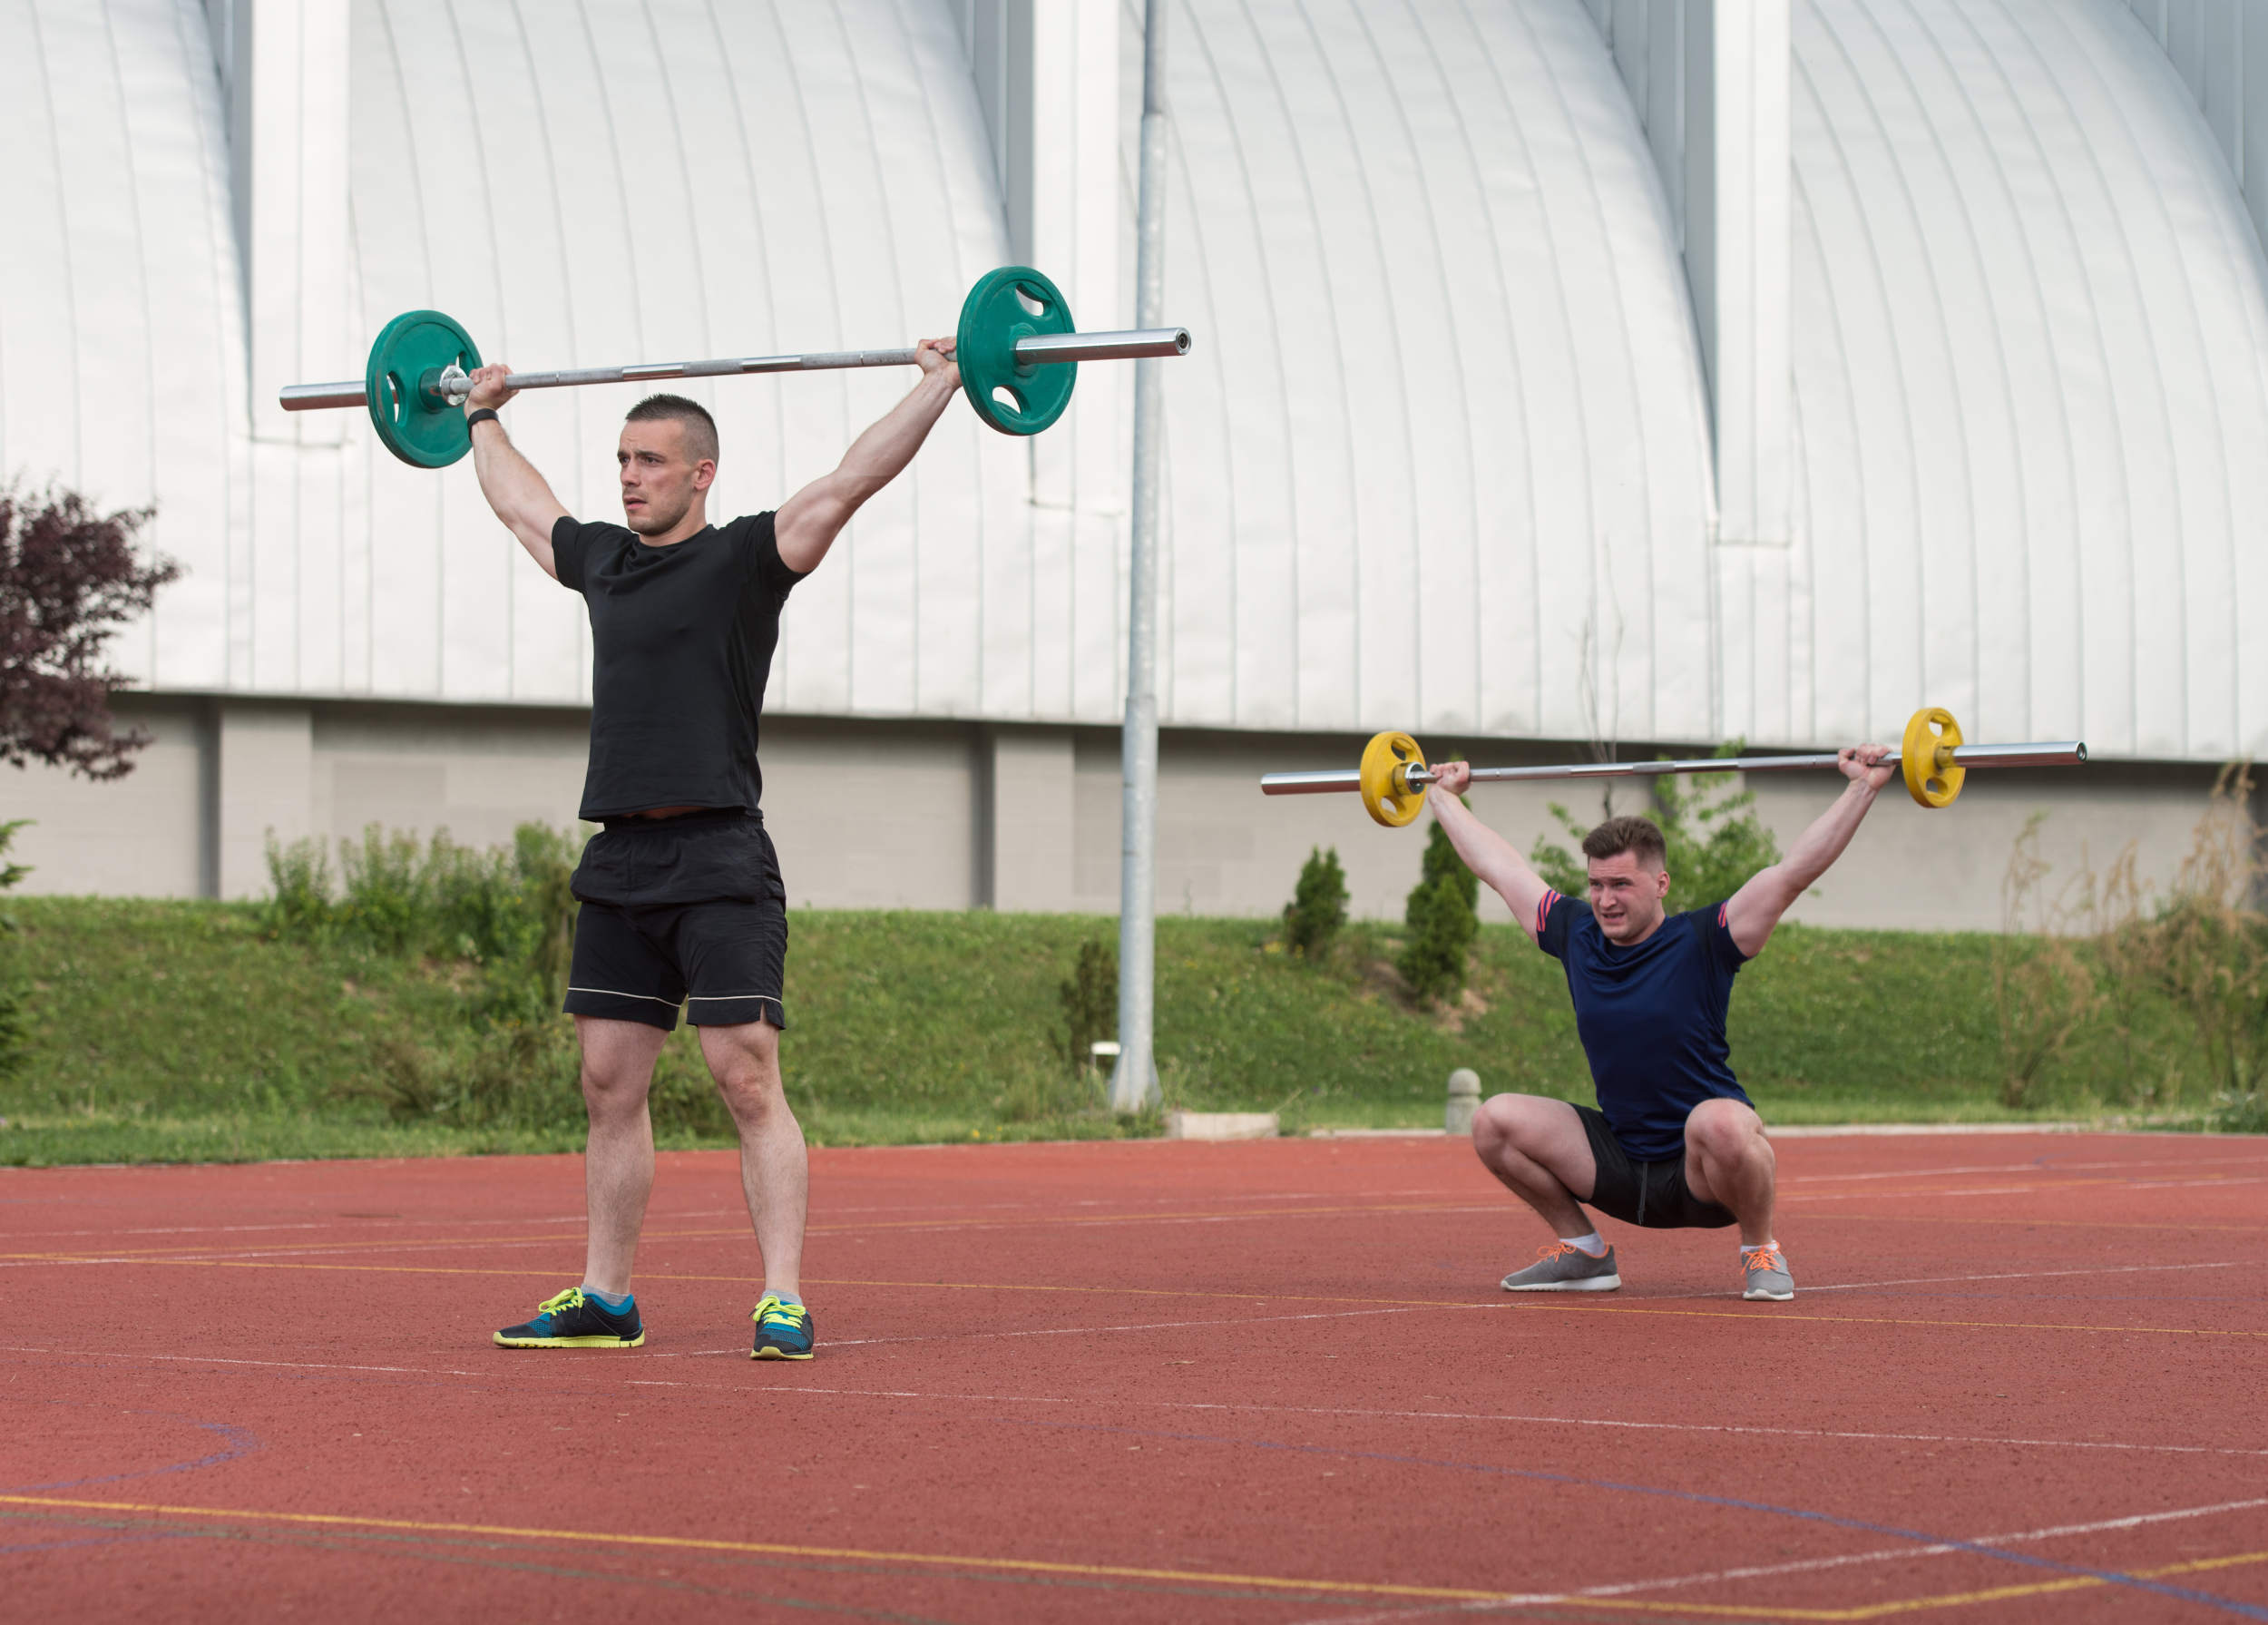 Olympic lifting outside on a track